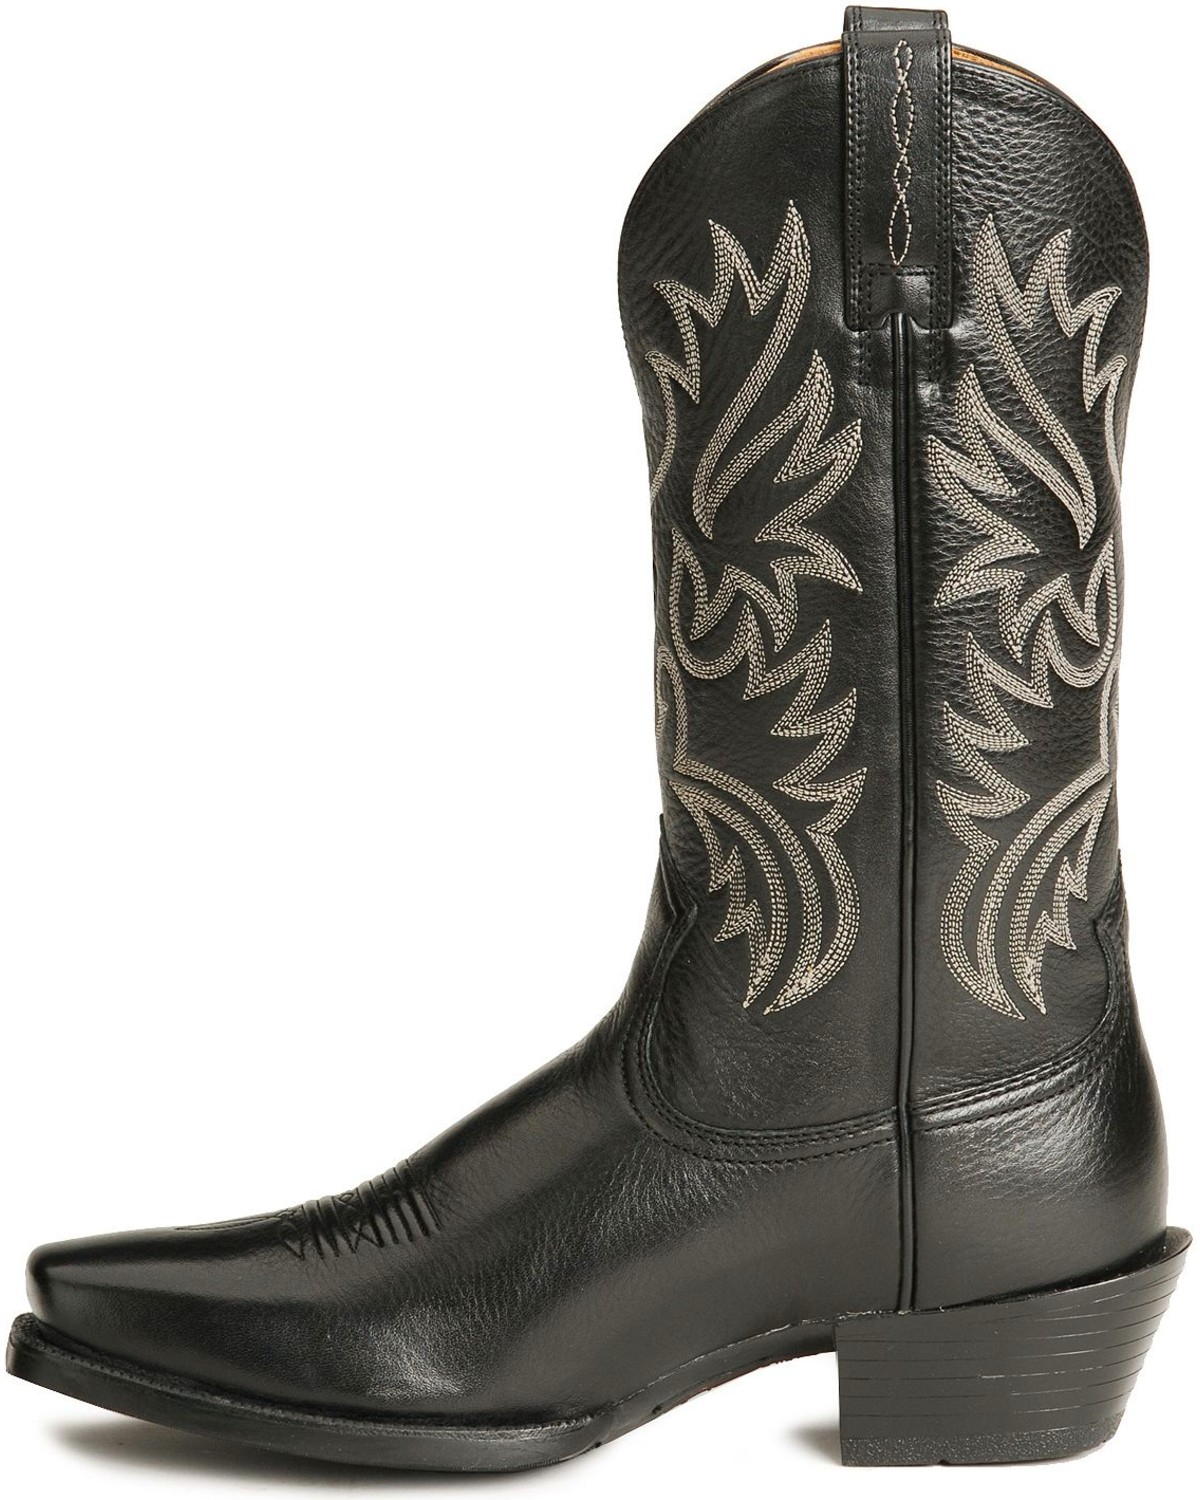 Ariat Legend Cowboy Boots - Square Toe | Sheplers